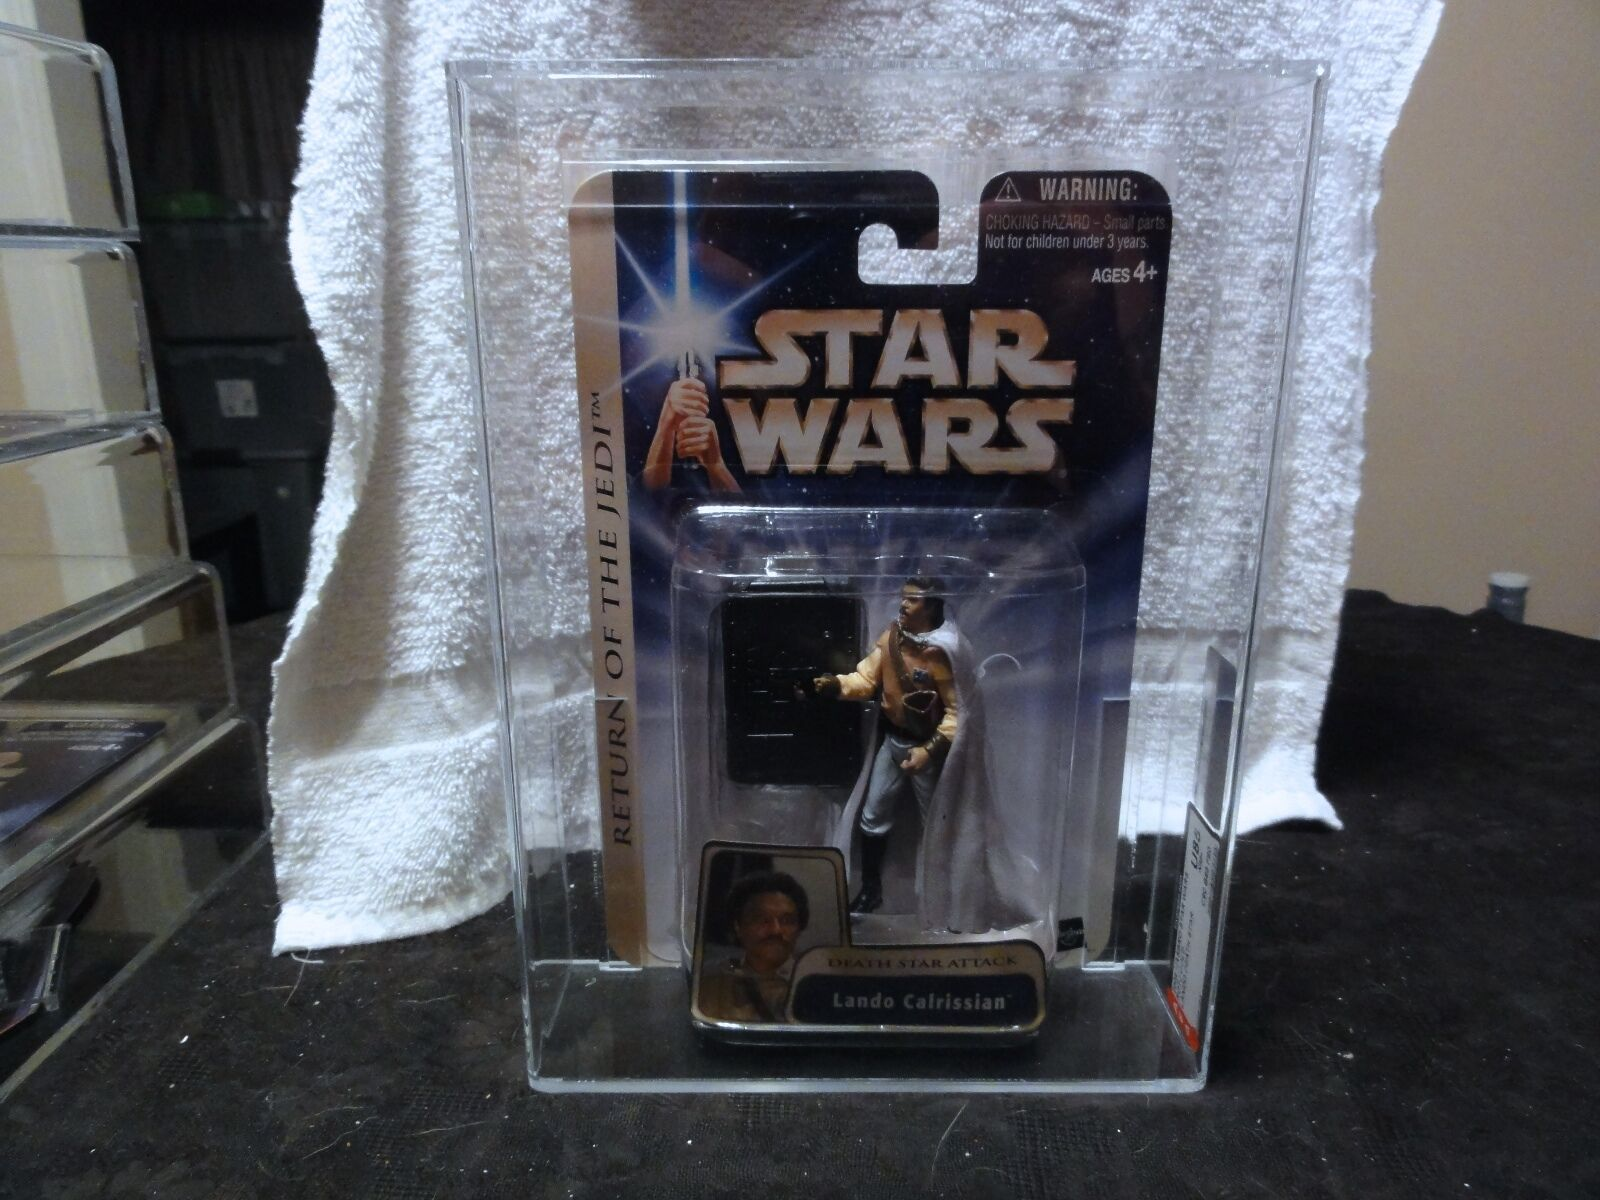 Star Wars 2004 Star Wars ROTJ Lando Calrissian Death Star AFA Sealed MIB BOX